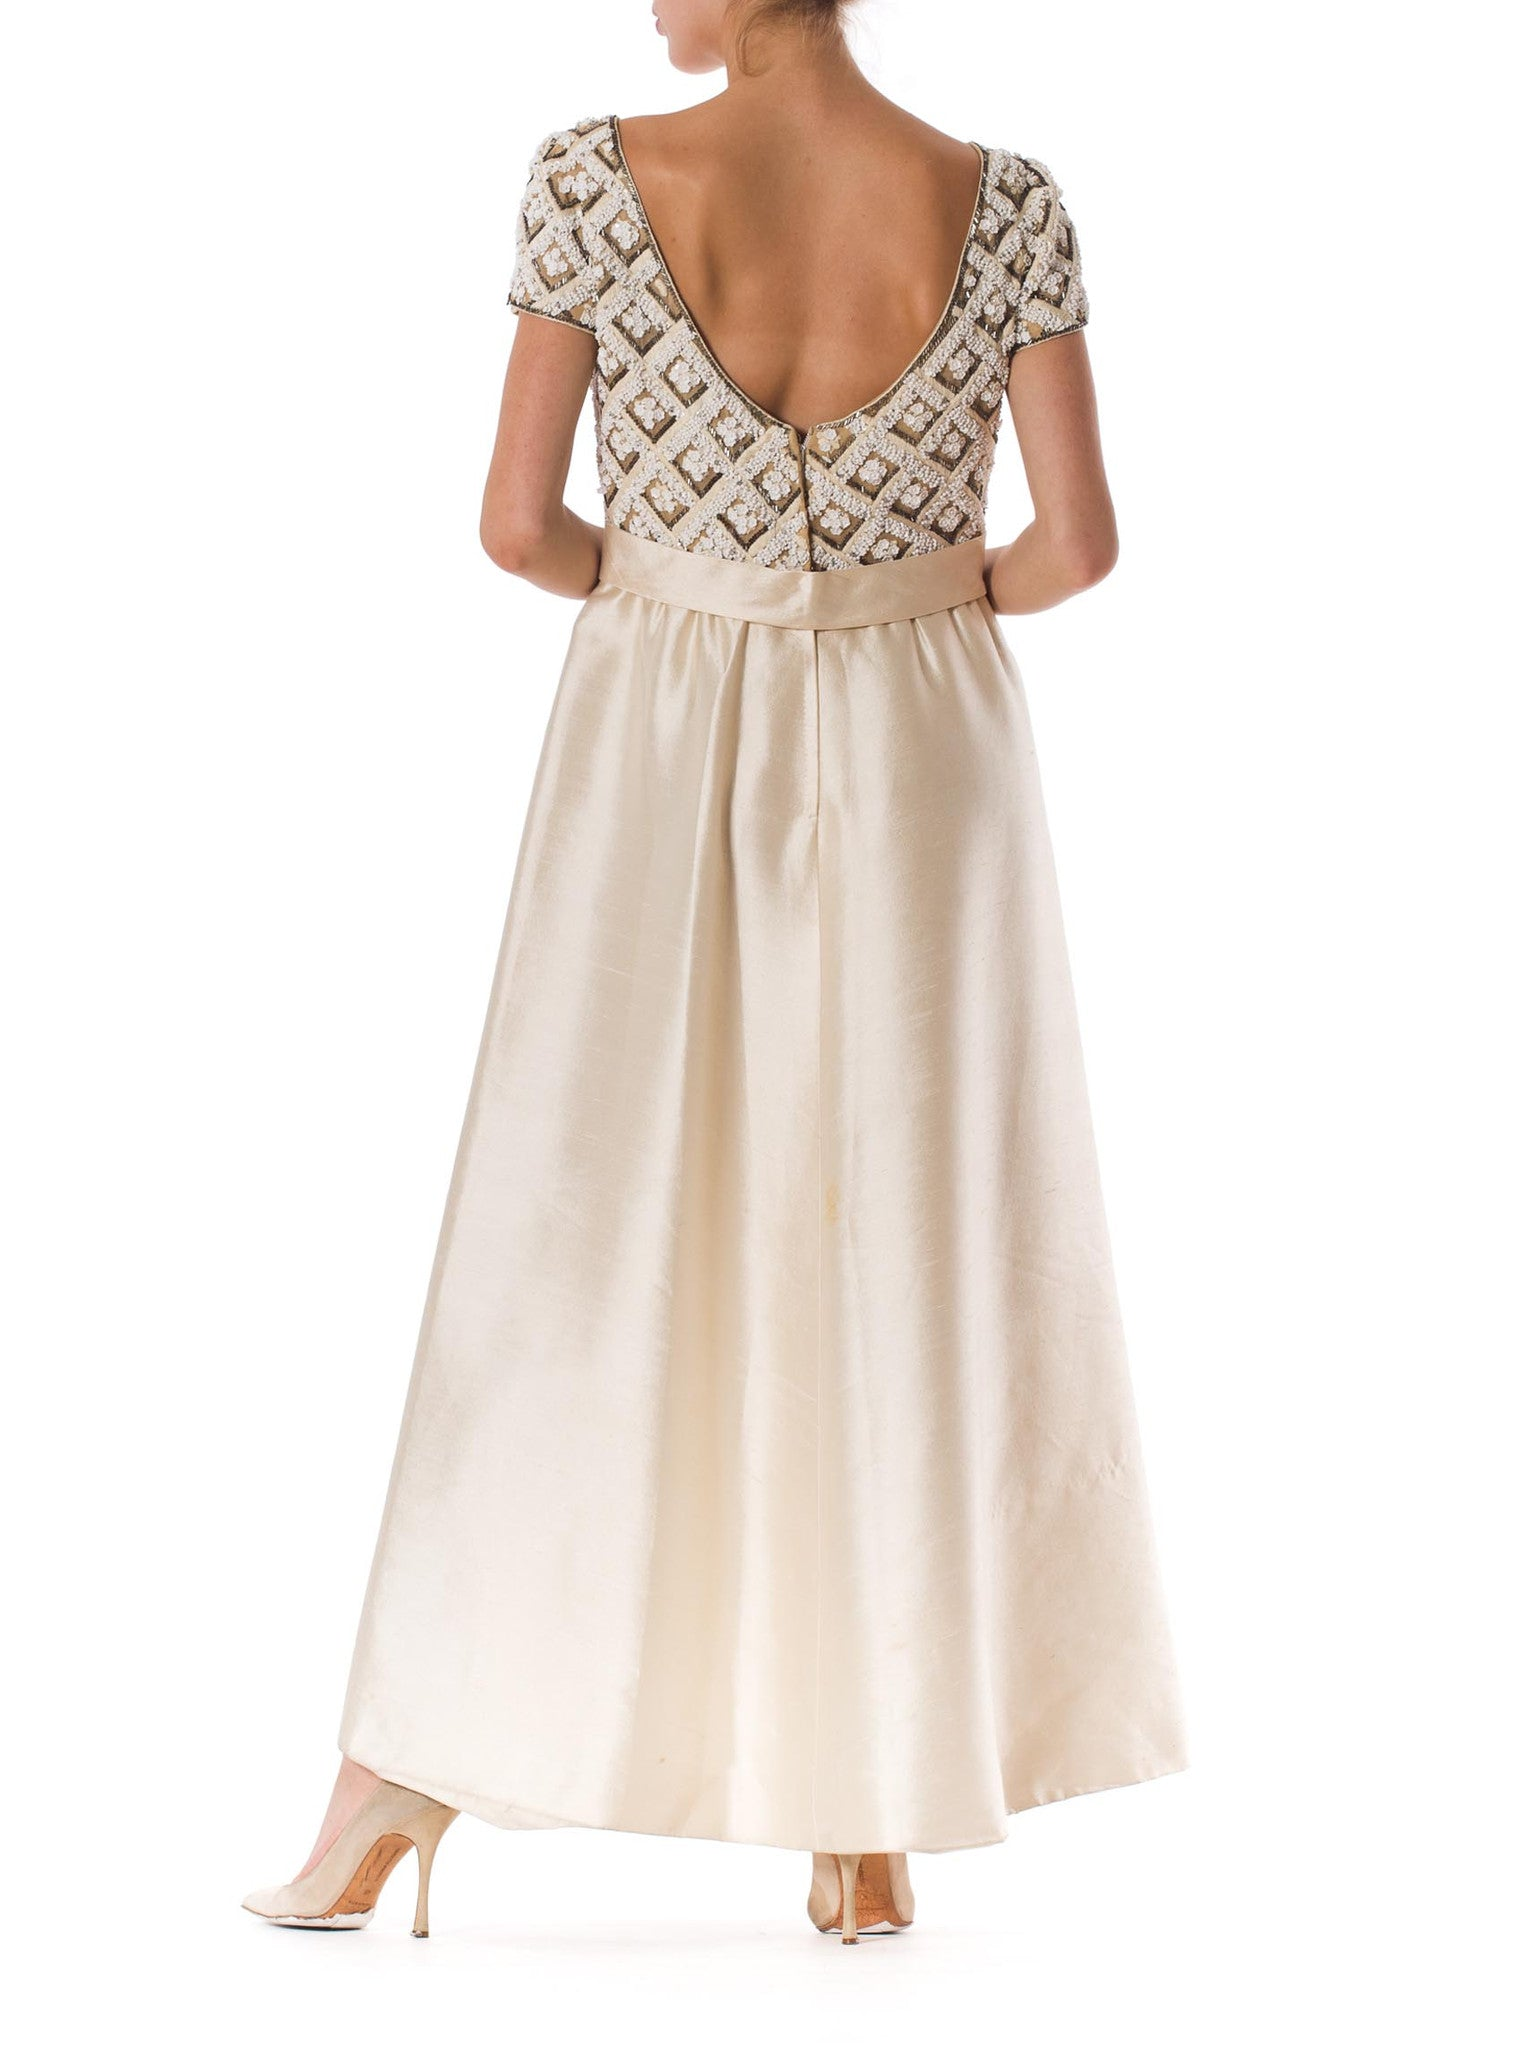 1960S Ivory Beaded Silk Radzimir Cap Sleeve Couture Detailed Gown With Slight Empire Waistline & Waist Bow